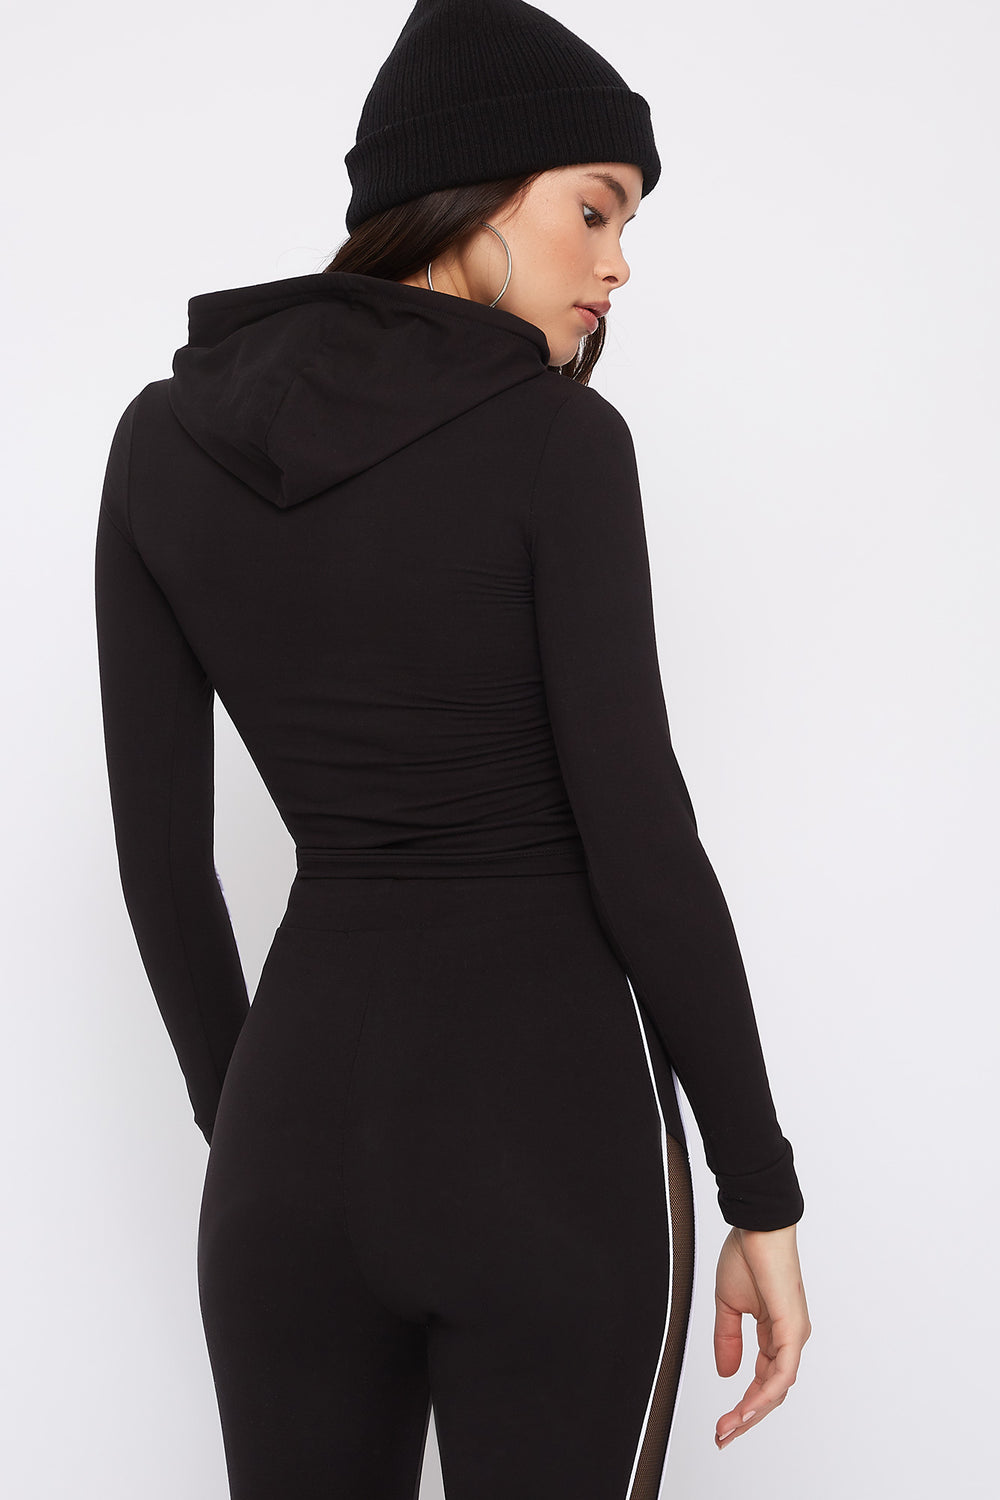 Mesh Cut-Out Hooded Long Sleeve Black